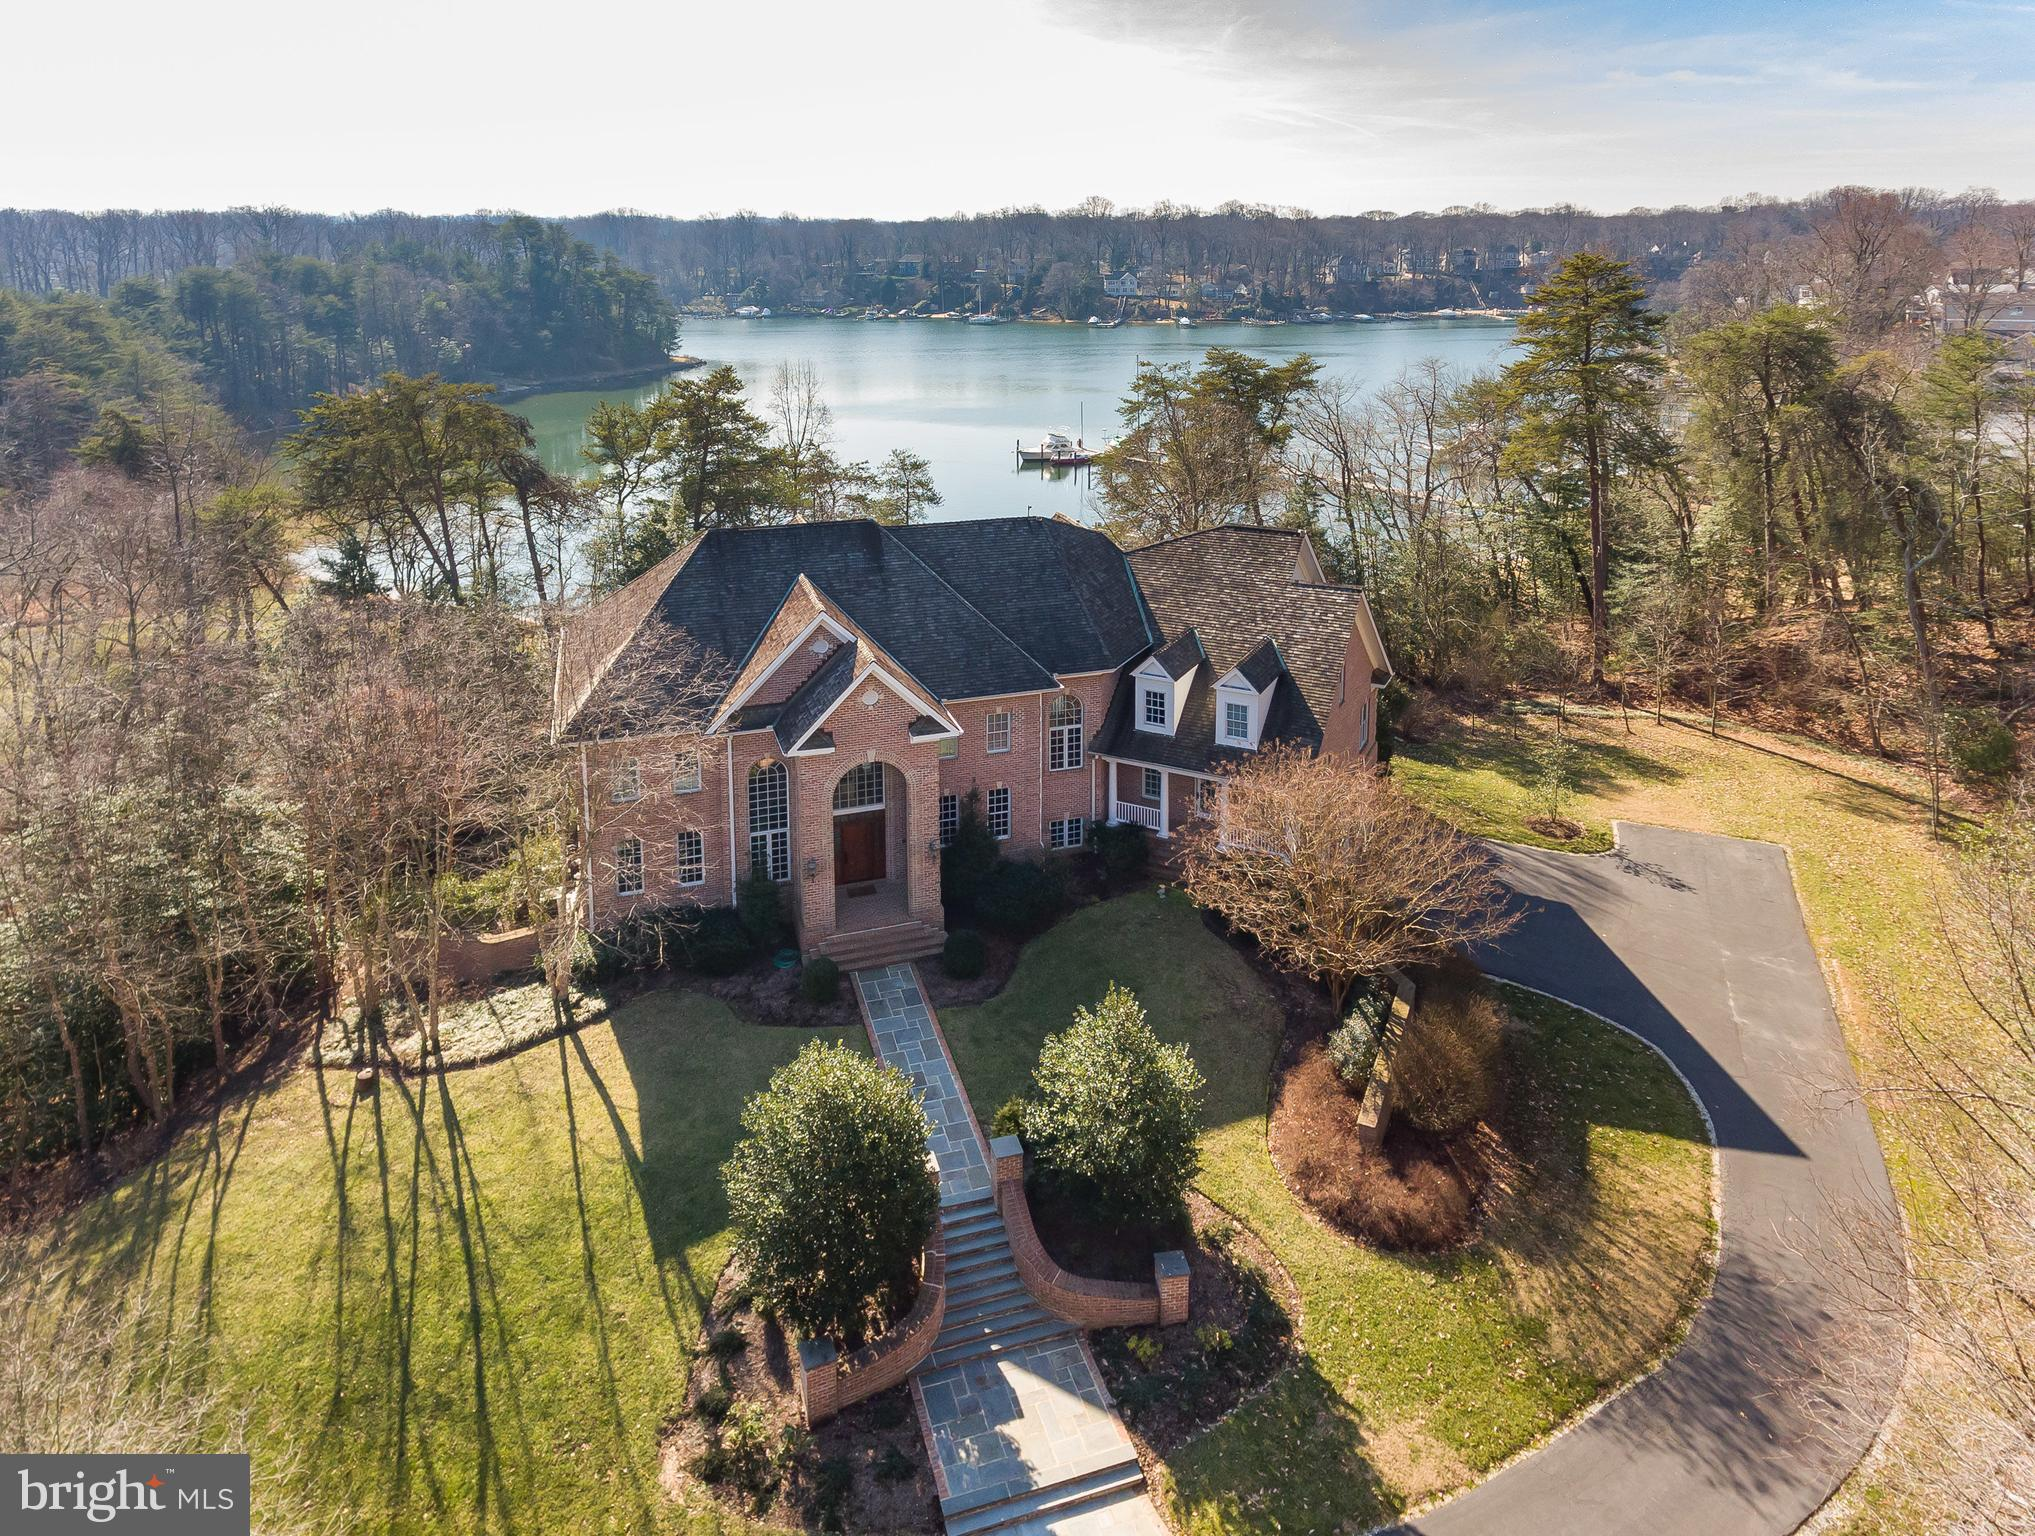 658 ROCK COVE LANE, SEVERNA PARK, MD 21146